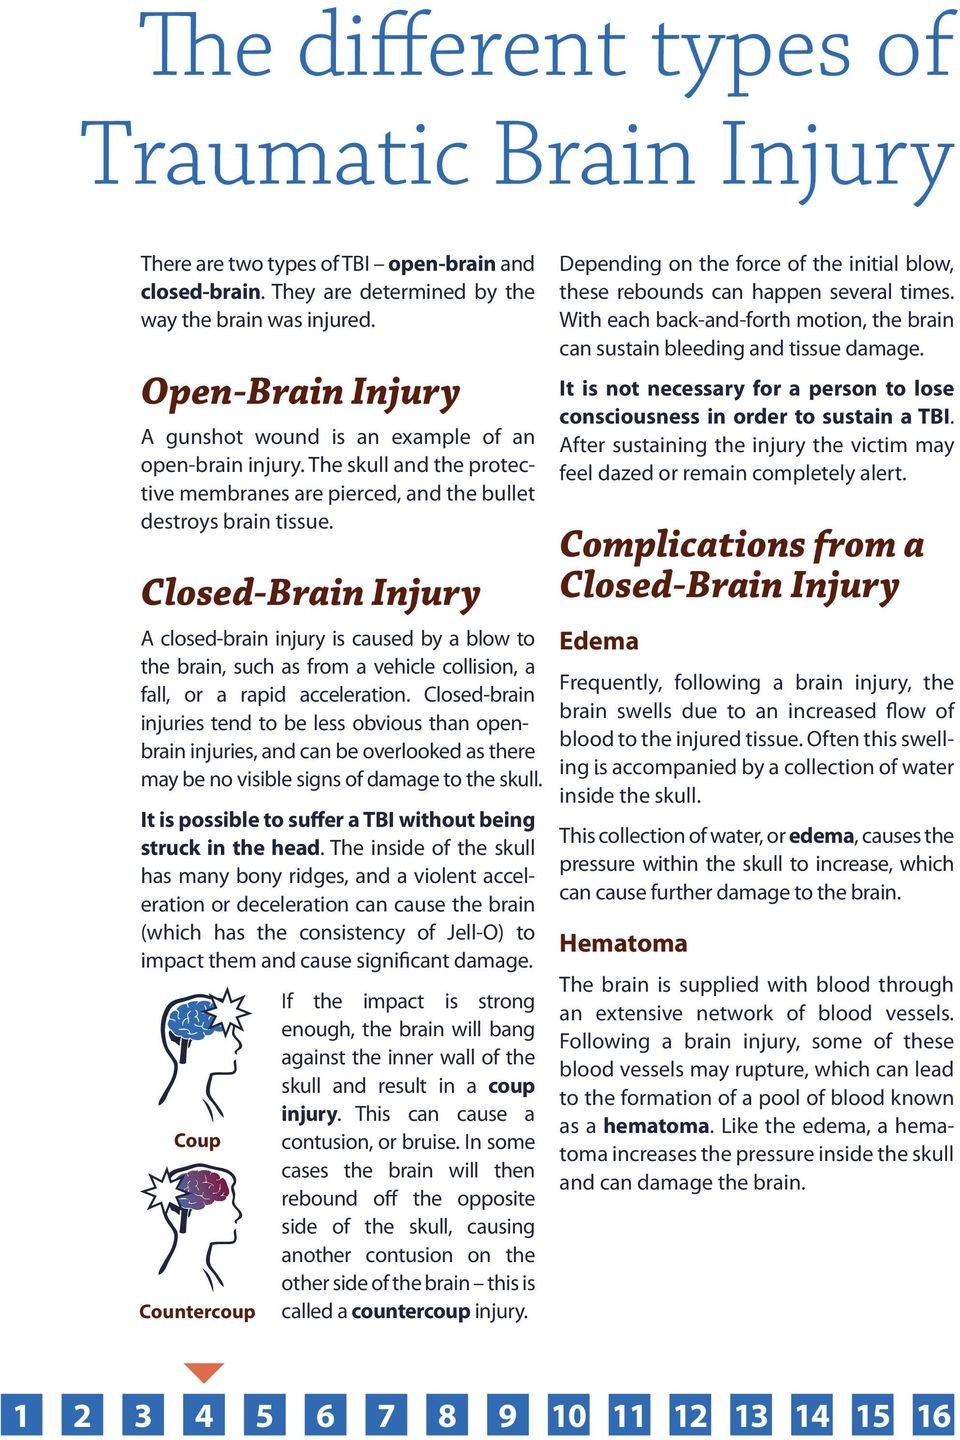 Closed-Brain Injury A closed-brain injury is caused by a blow to the brain, such as from a vehicle collision, a fall, or a rapid acceleration.